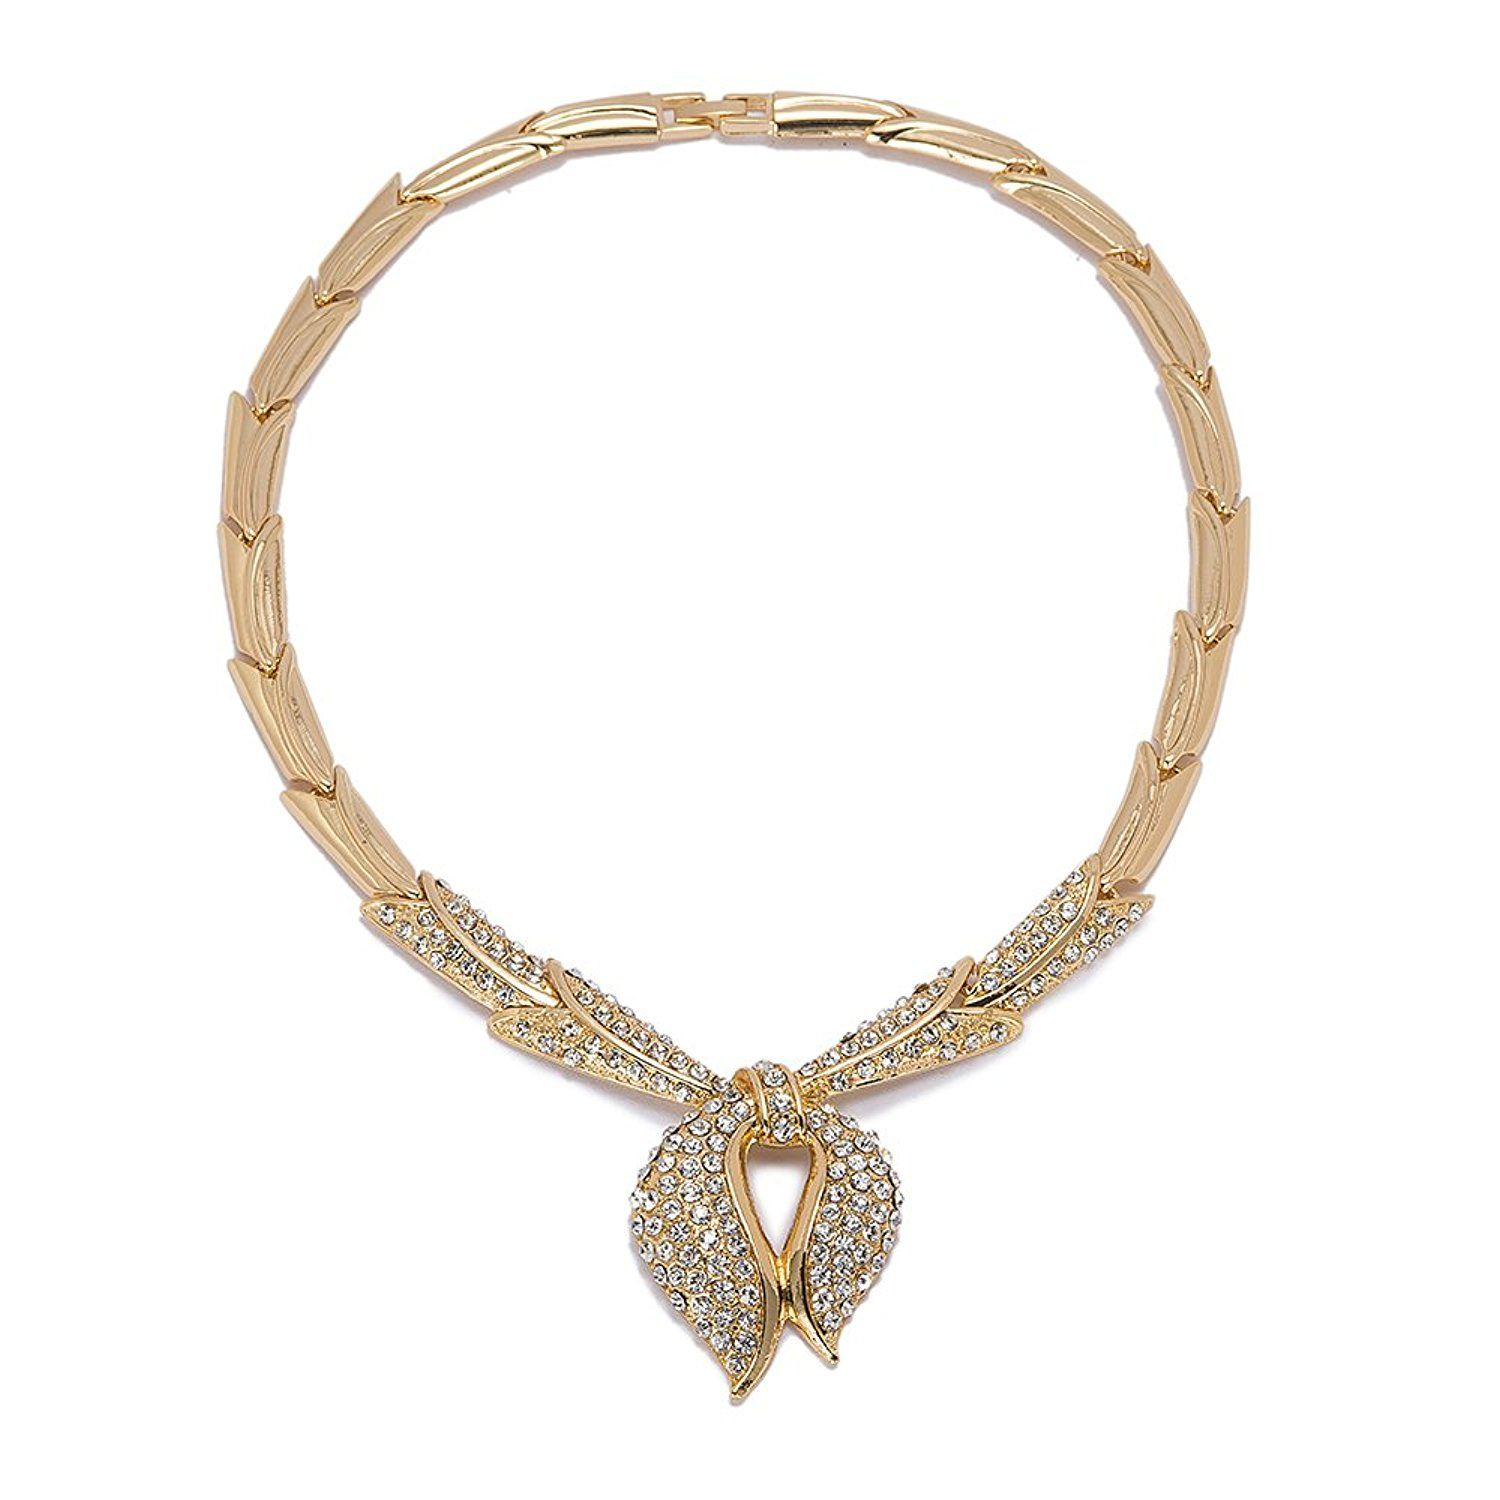 K wedding jewelry sets for bridaldubai gold plated zircon scarf